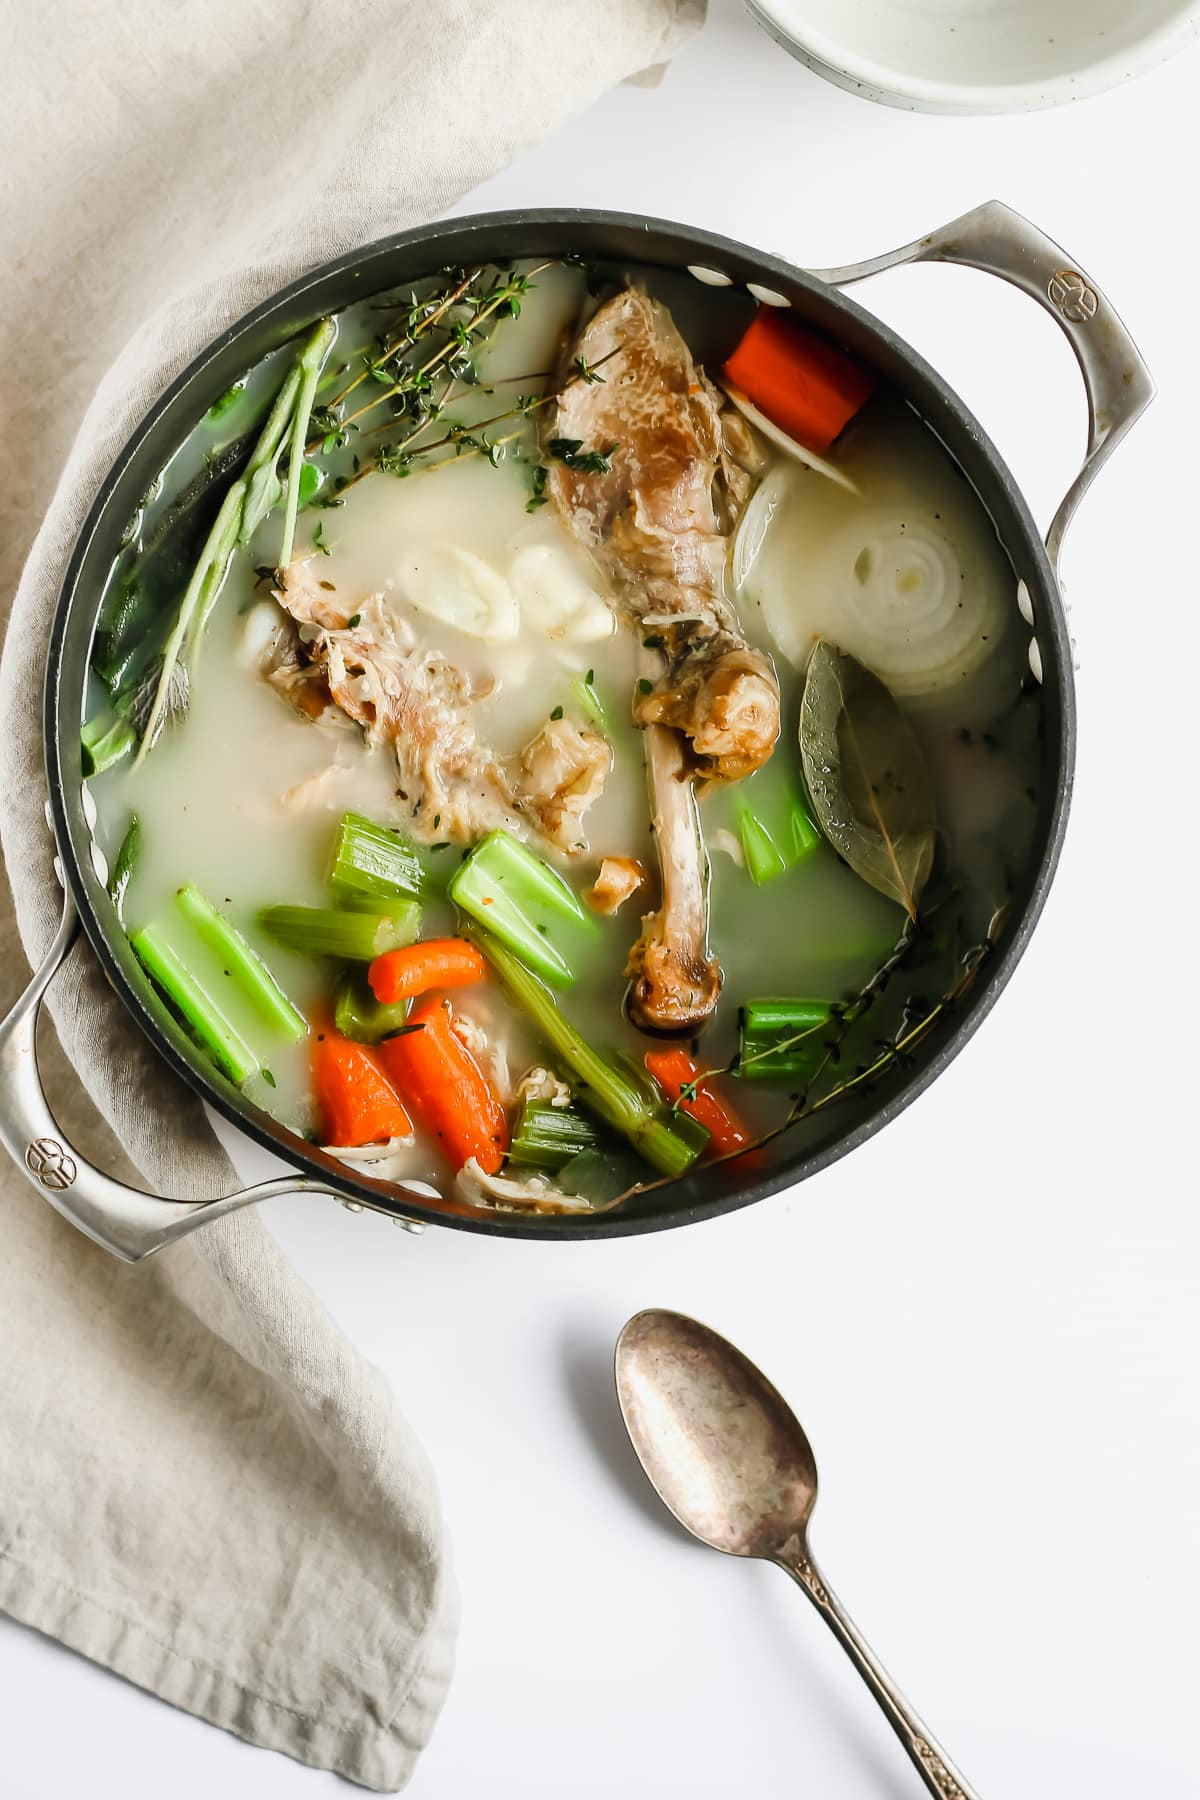 How to Make the Best Homemade Turkey Broth